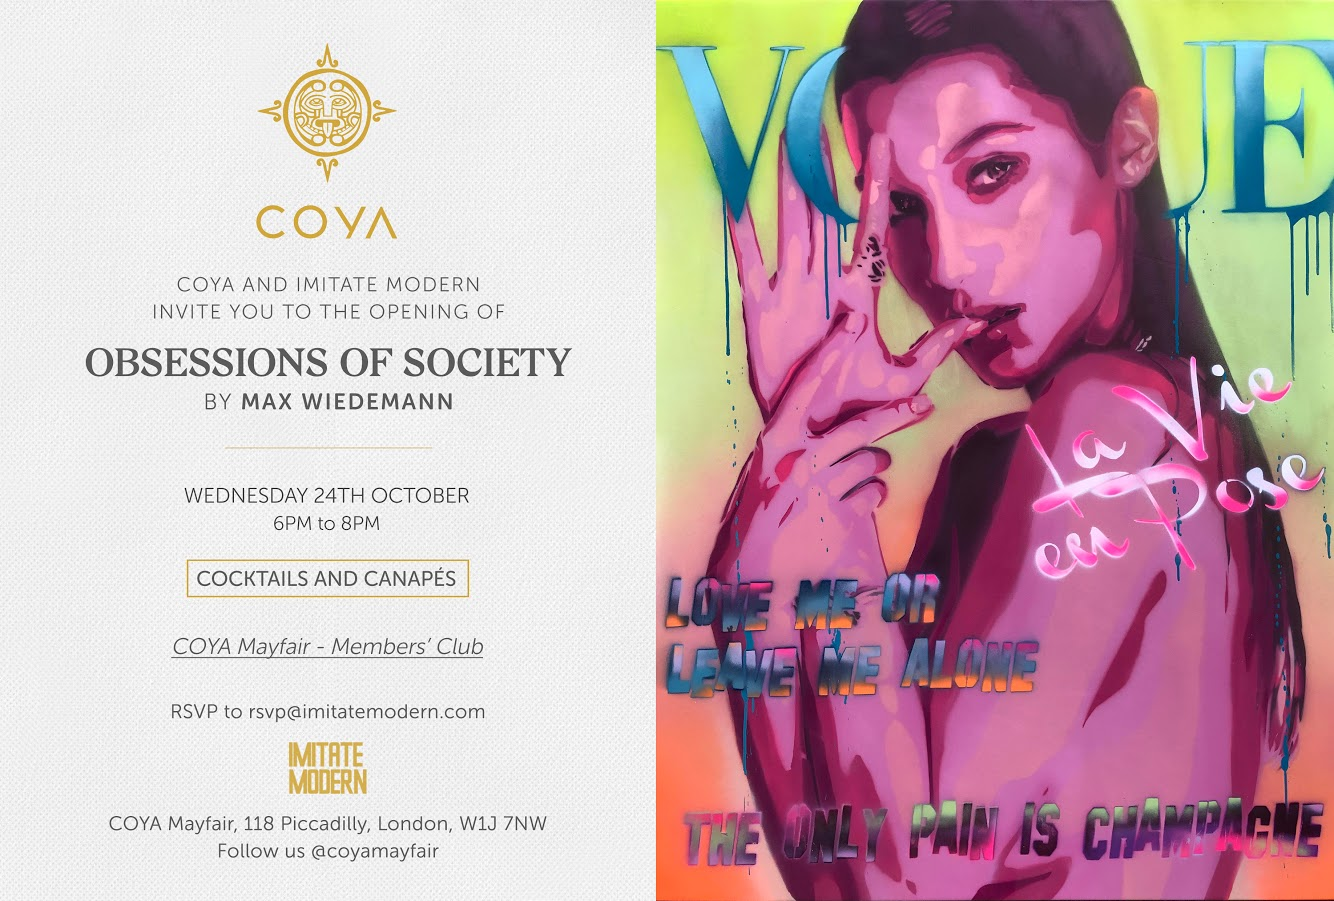 Obsession of society invitation RSPV IG.jpeg